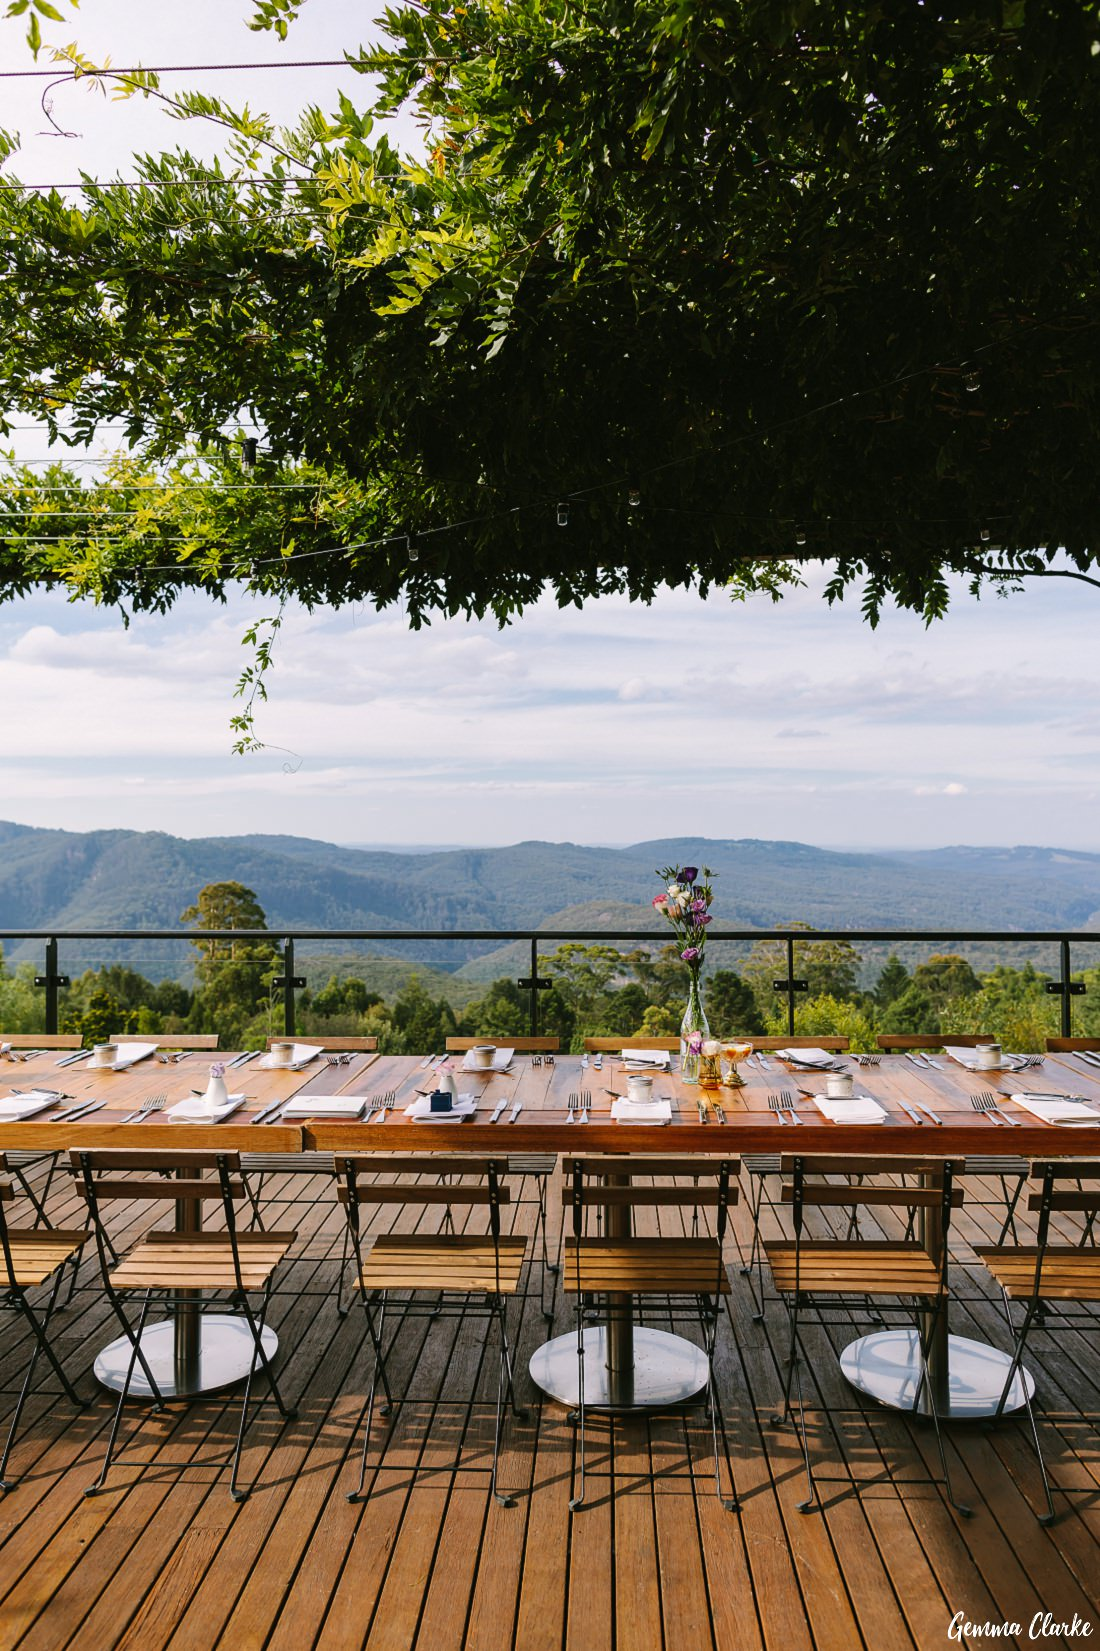 Amazing balcony dining with overhead vines at The Potager at this Mount Tomah Botanic Gardens Wedding